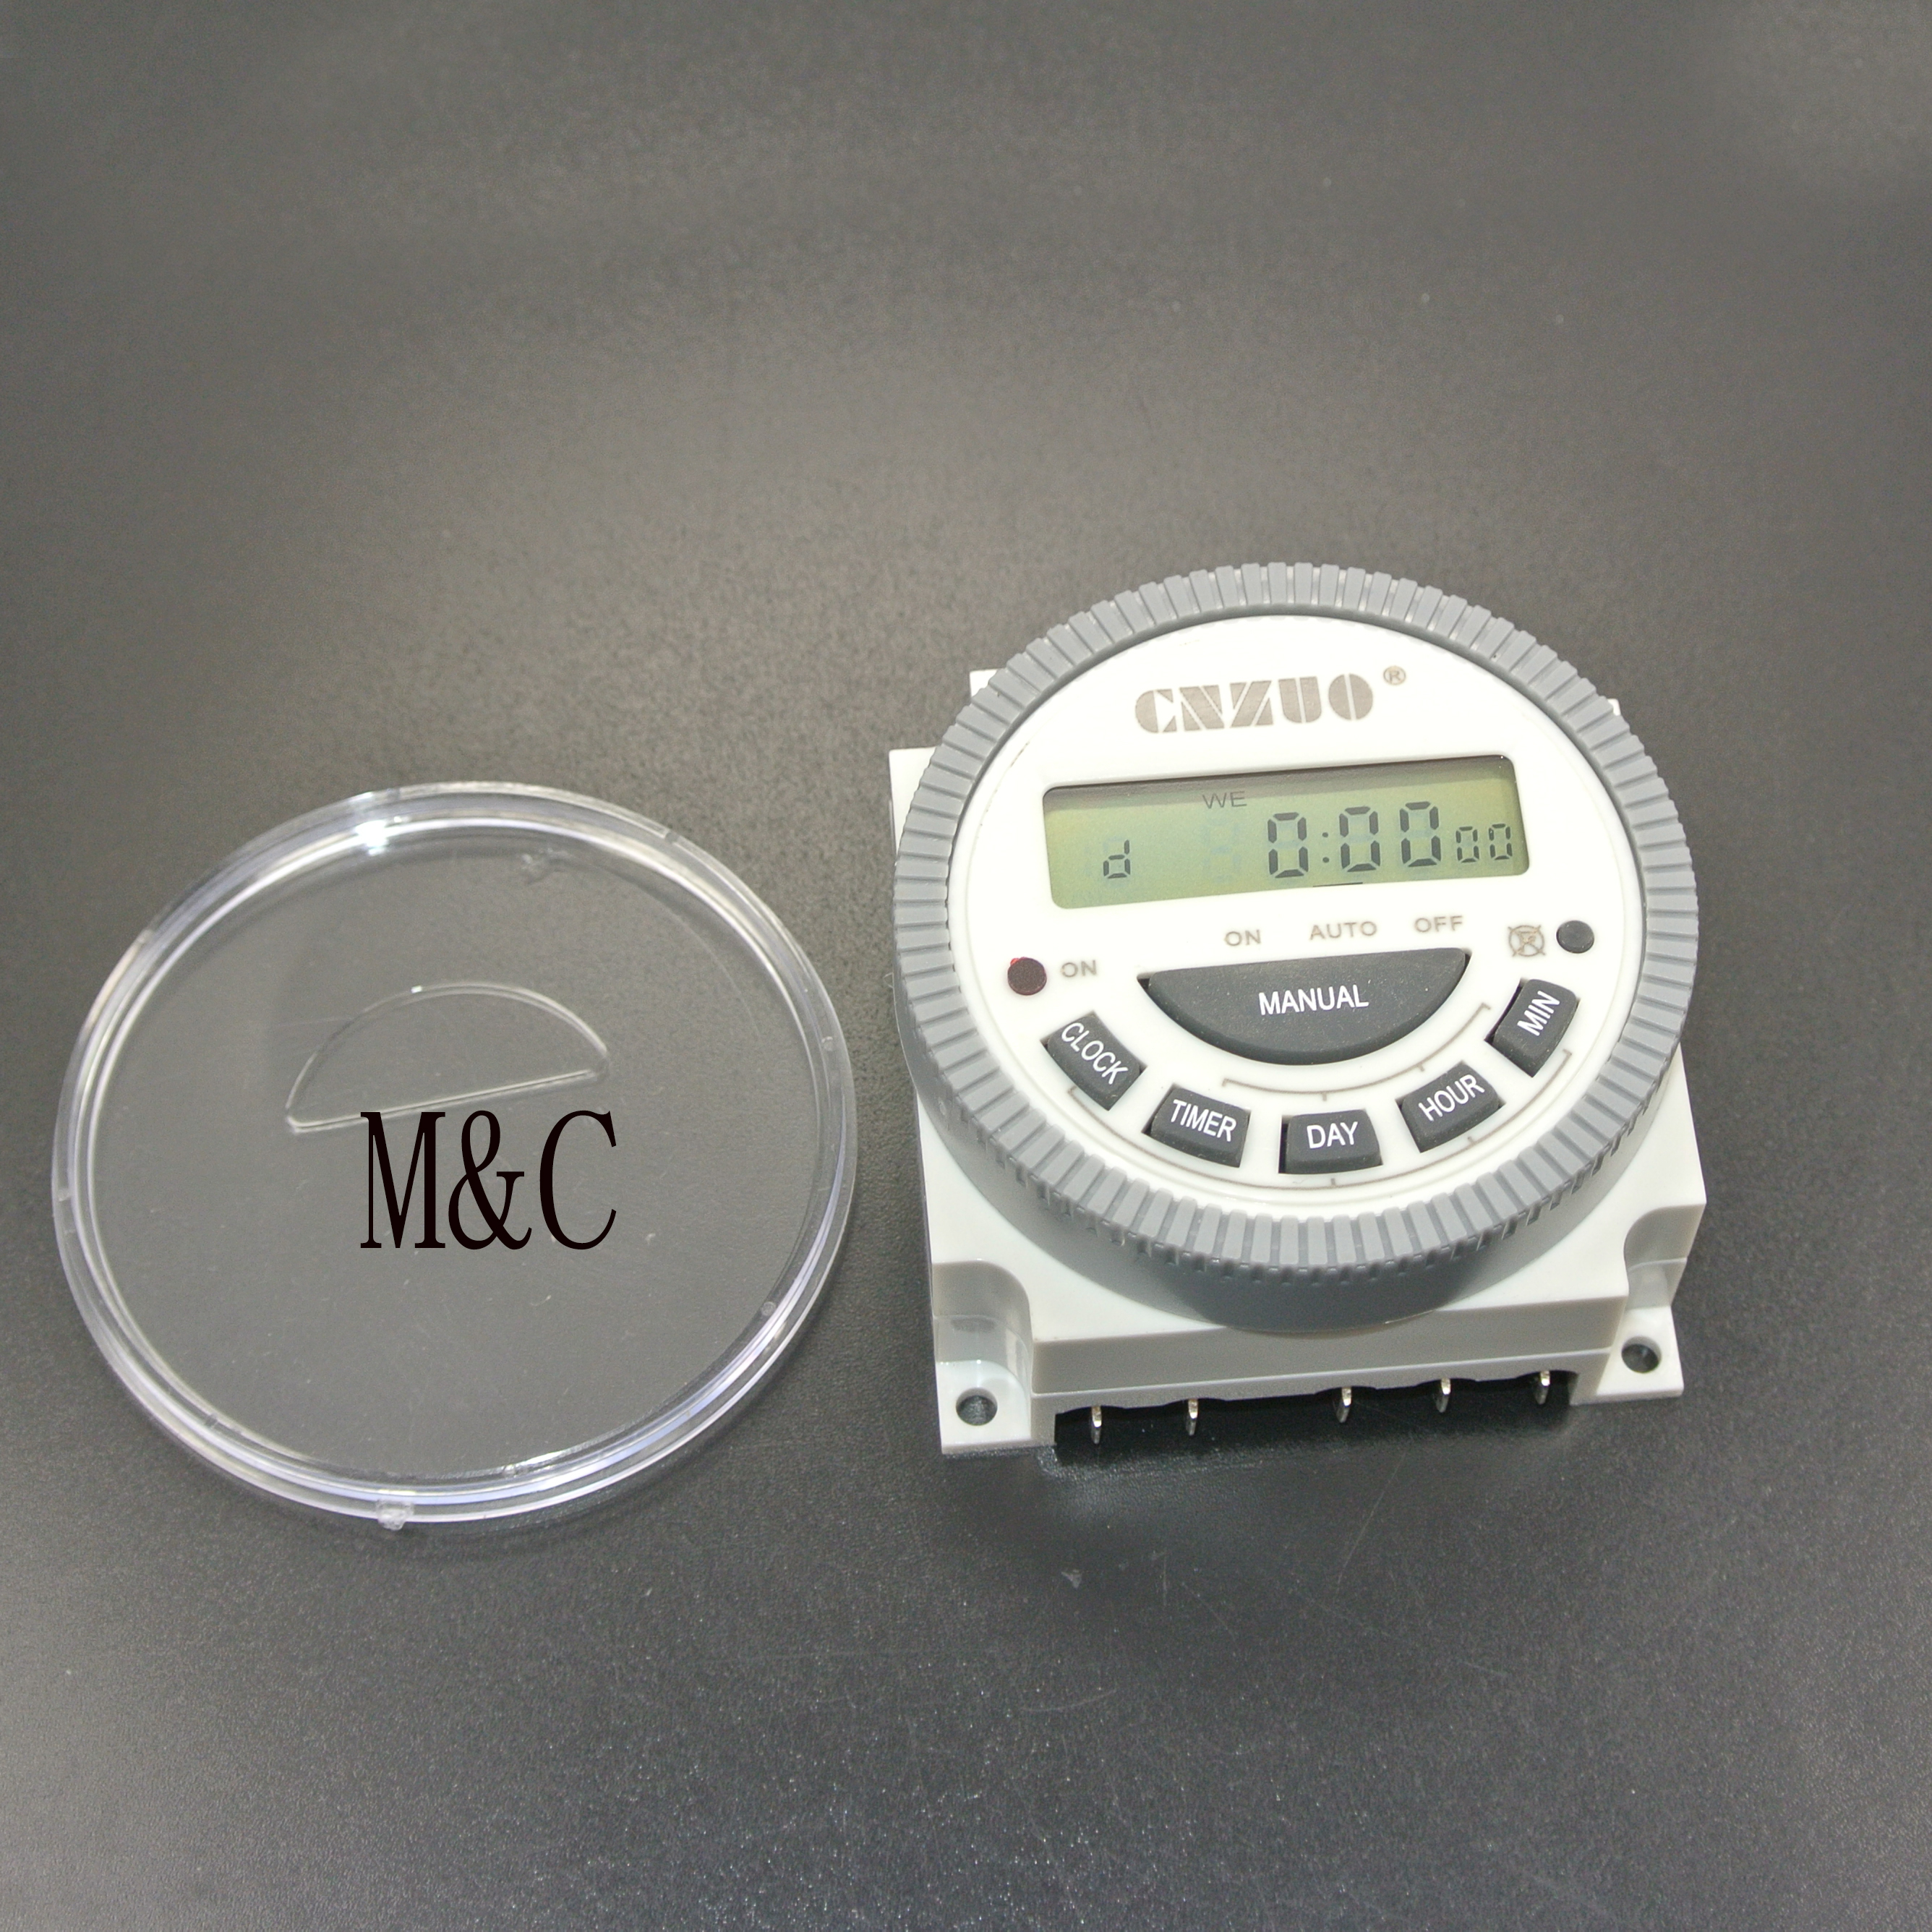 Tm619 220vac 110vac 24vdc 12vvdc Digital Timer Switch With Wiring Waterproof Cover Output Easy 7 Days Programmable Time In Relays From Home